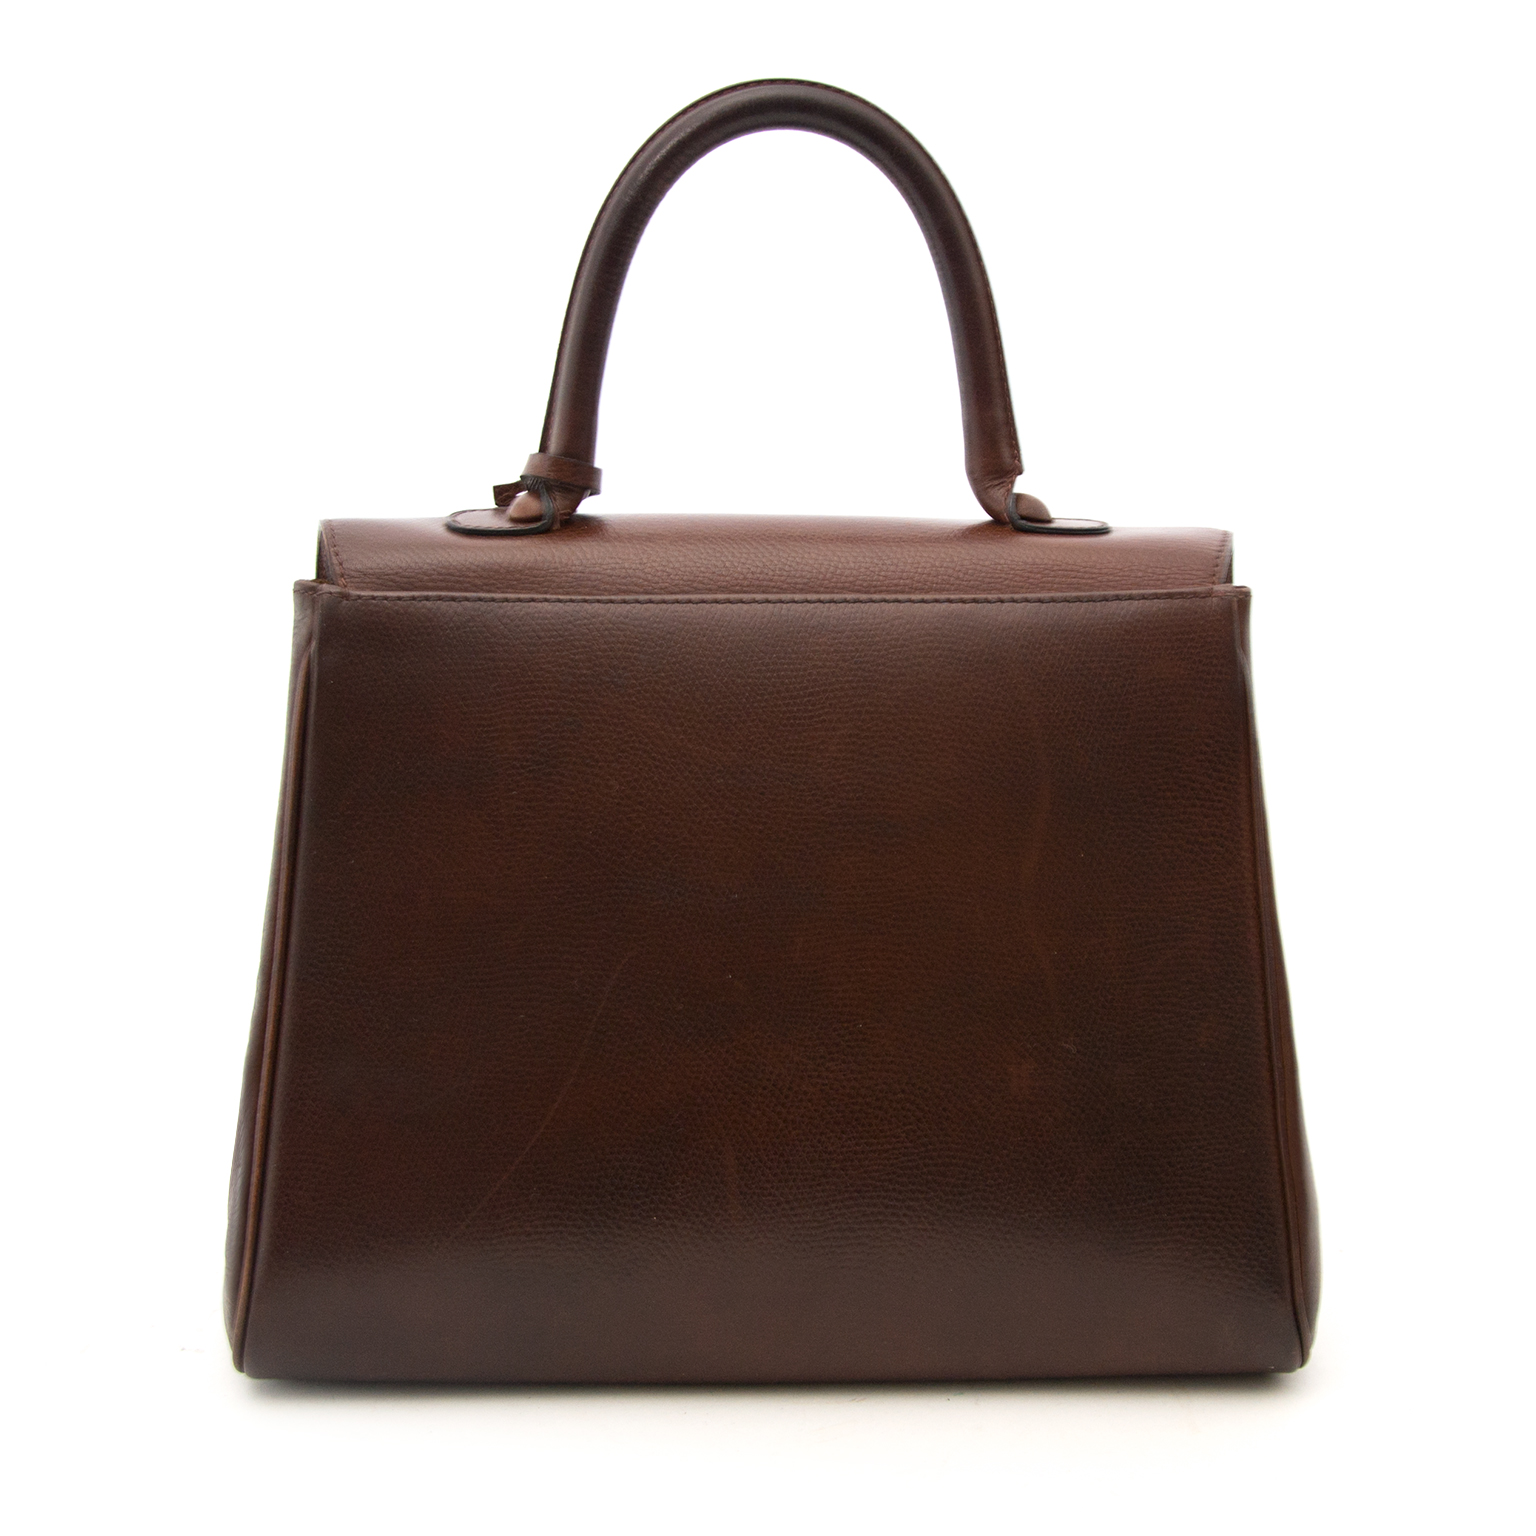 Delvaux Brillant MM Dark Brown te koop online bij luxewebshop www.labellov.com of in de showroom in Antwerpen, luxe tassen aan betaalbare prijzen met wereldwijde verzending.